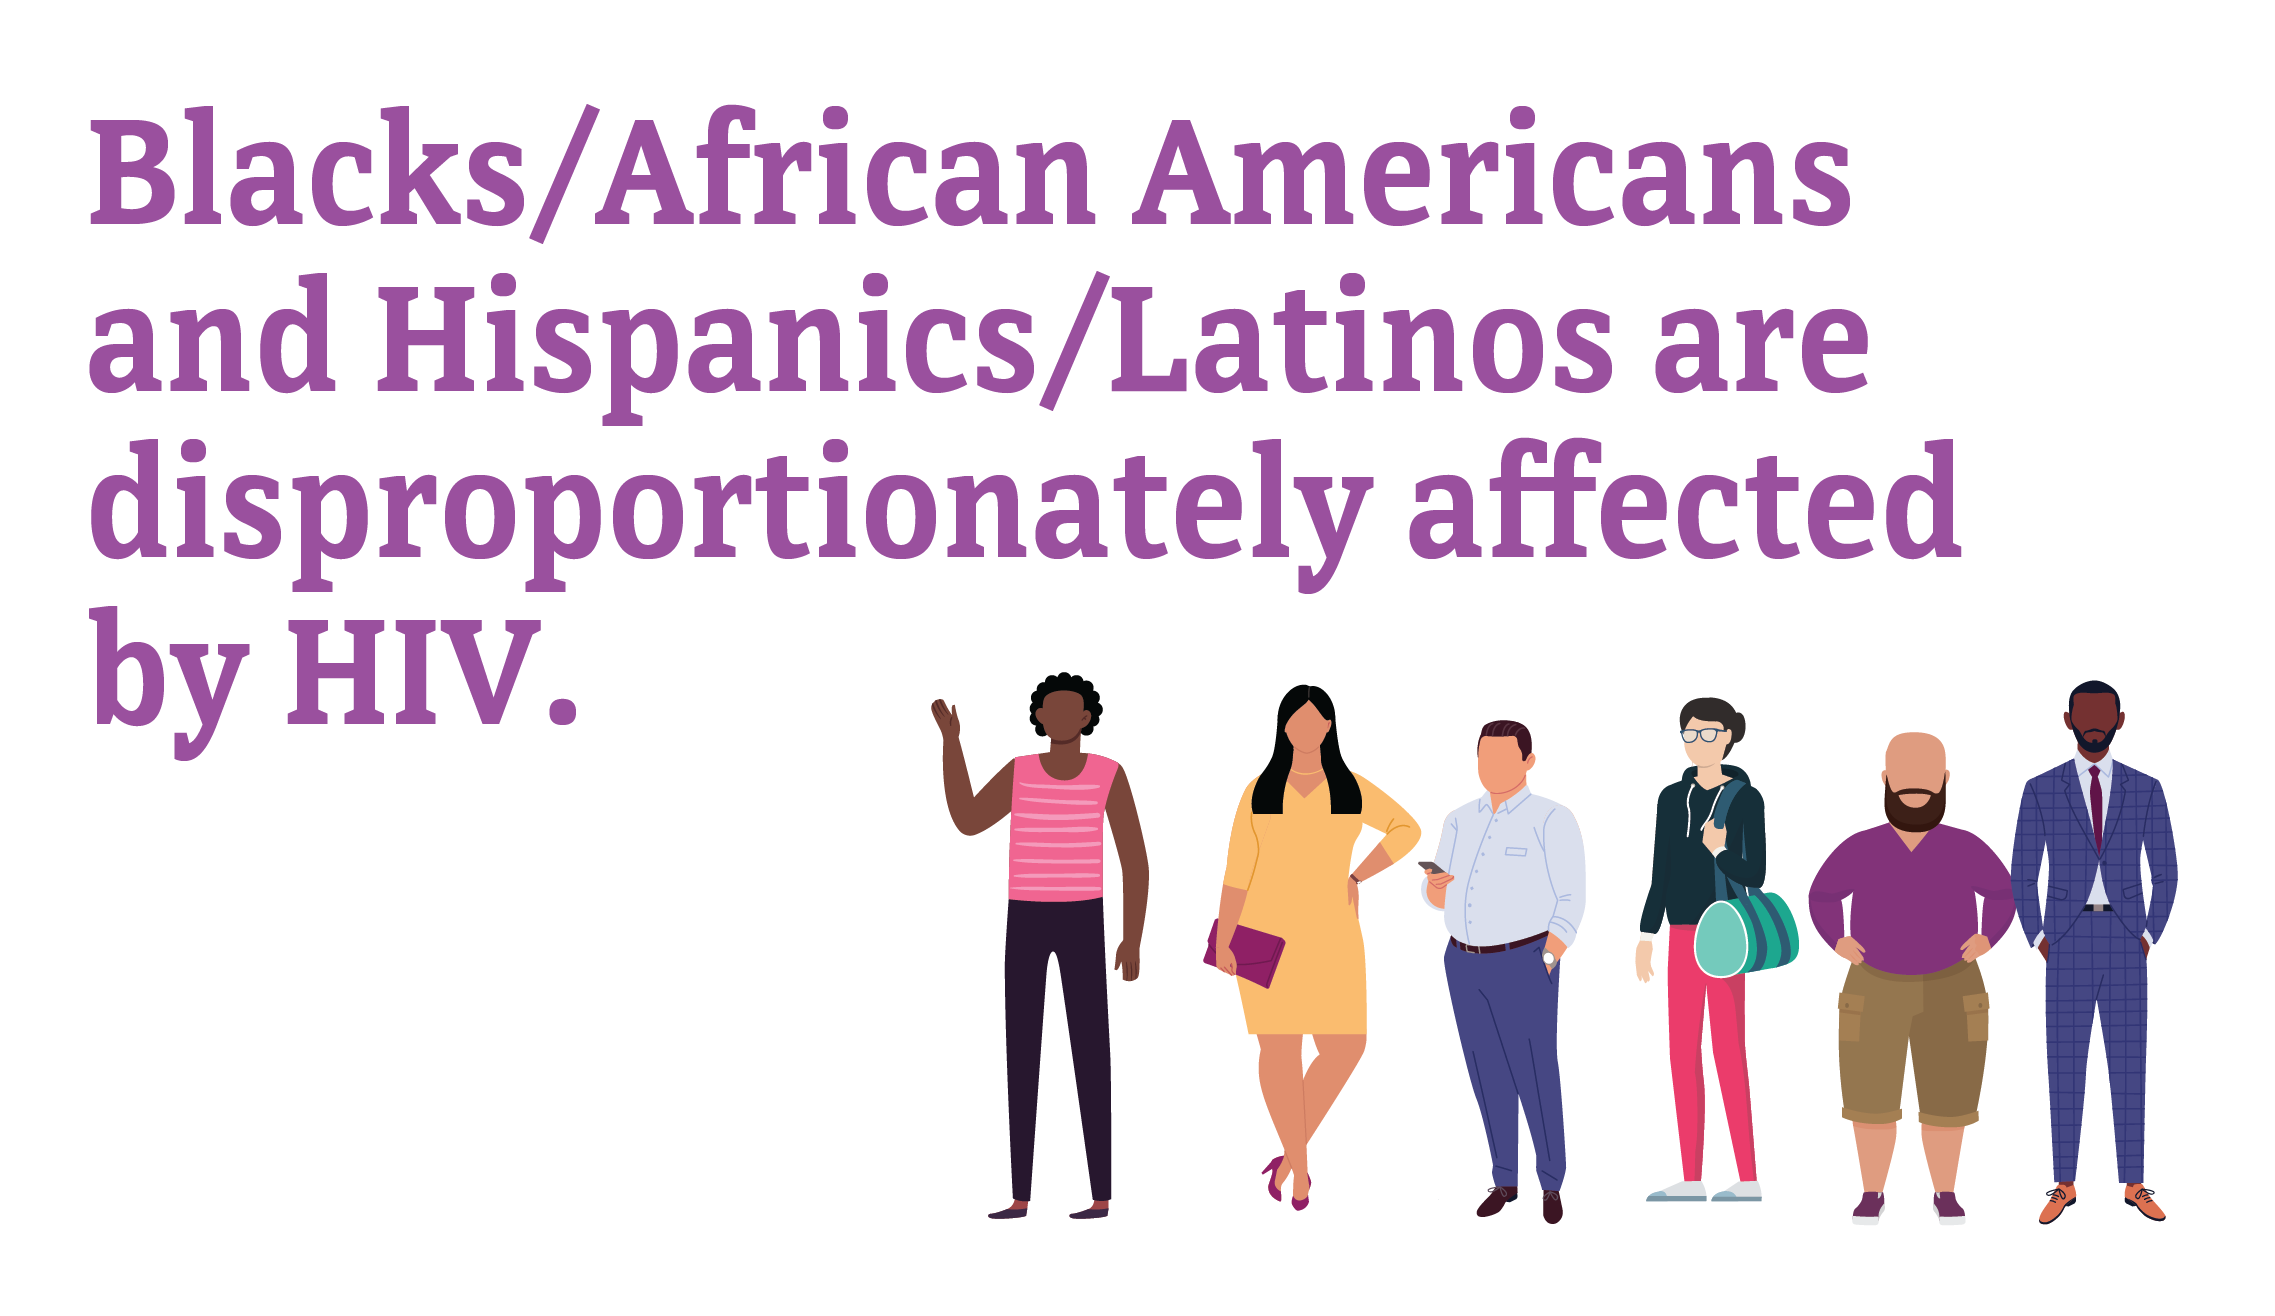 Blacks/African Americans and Hispanics/Latinos are disproportionately affected by HIV.